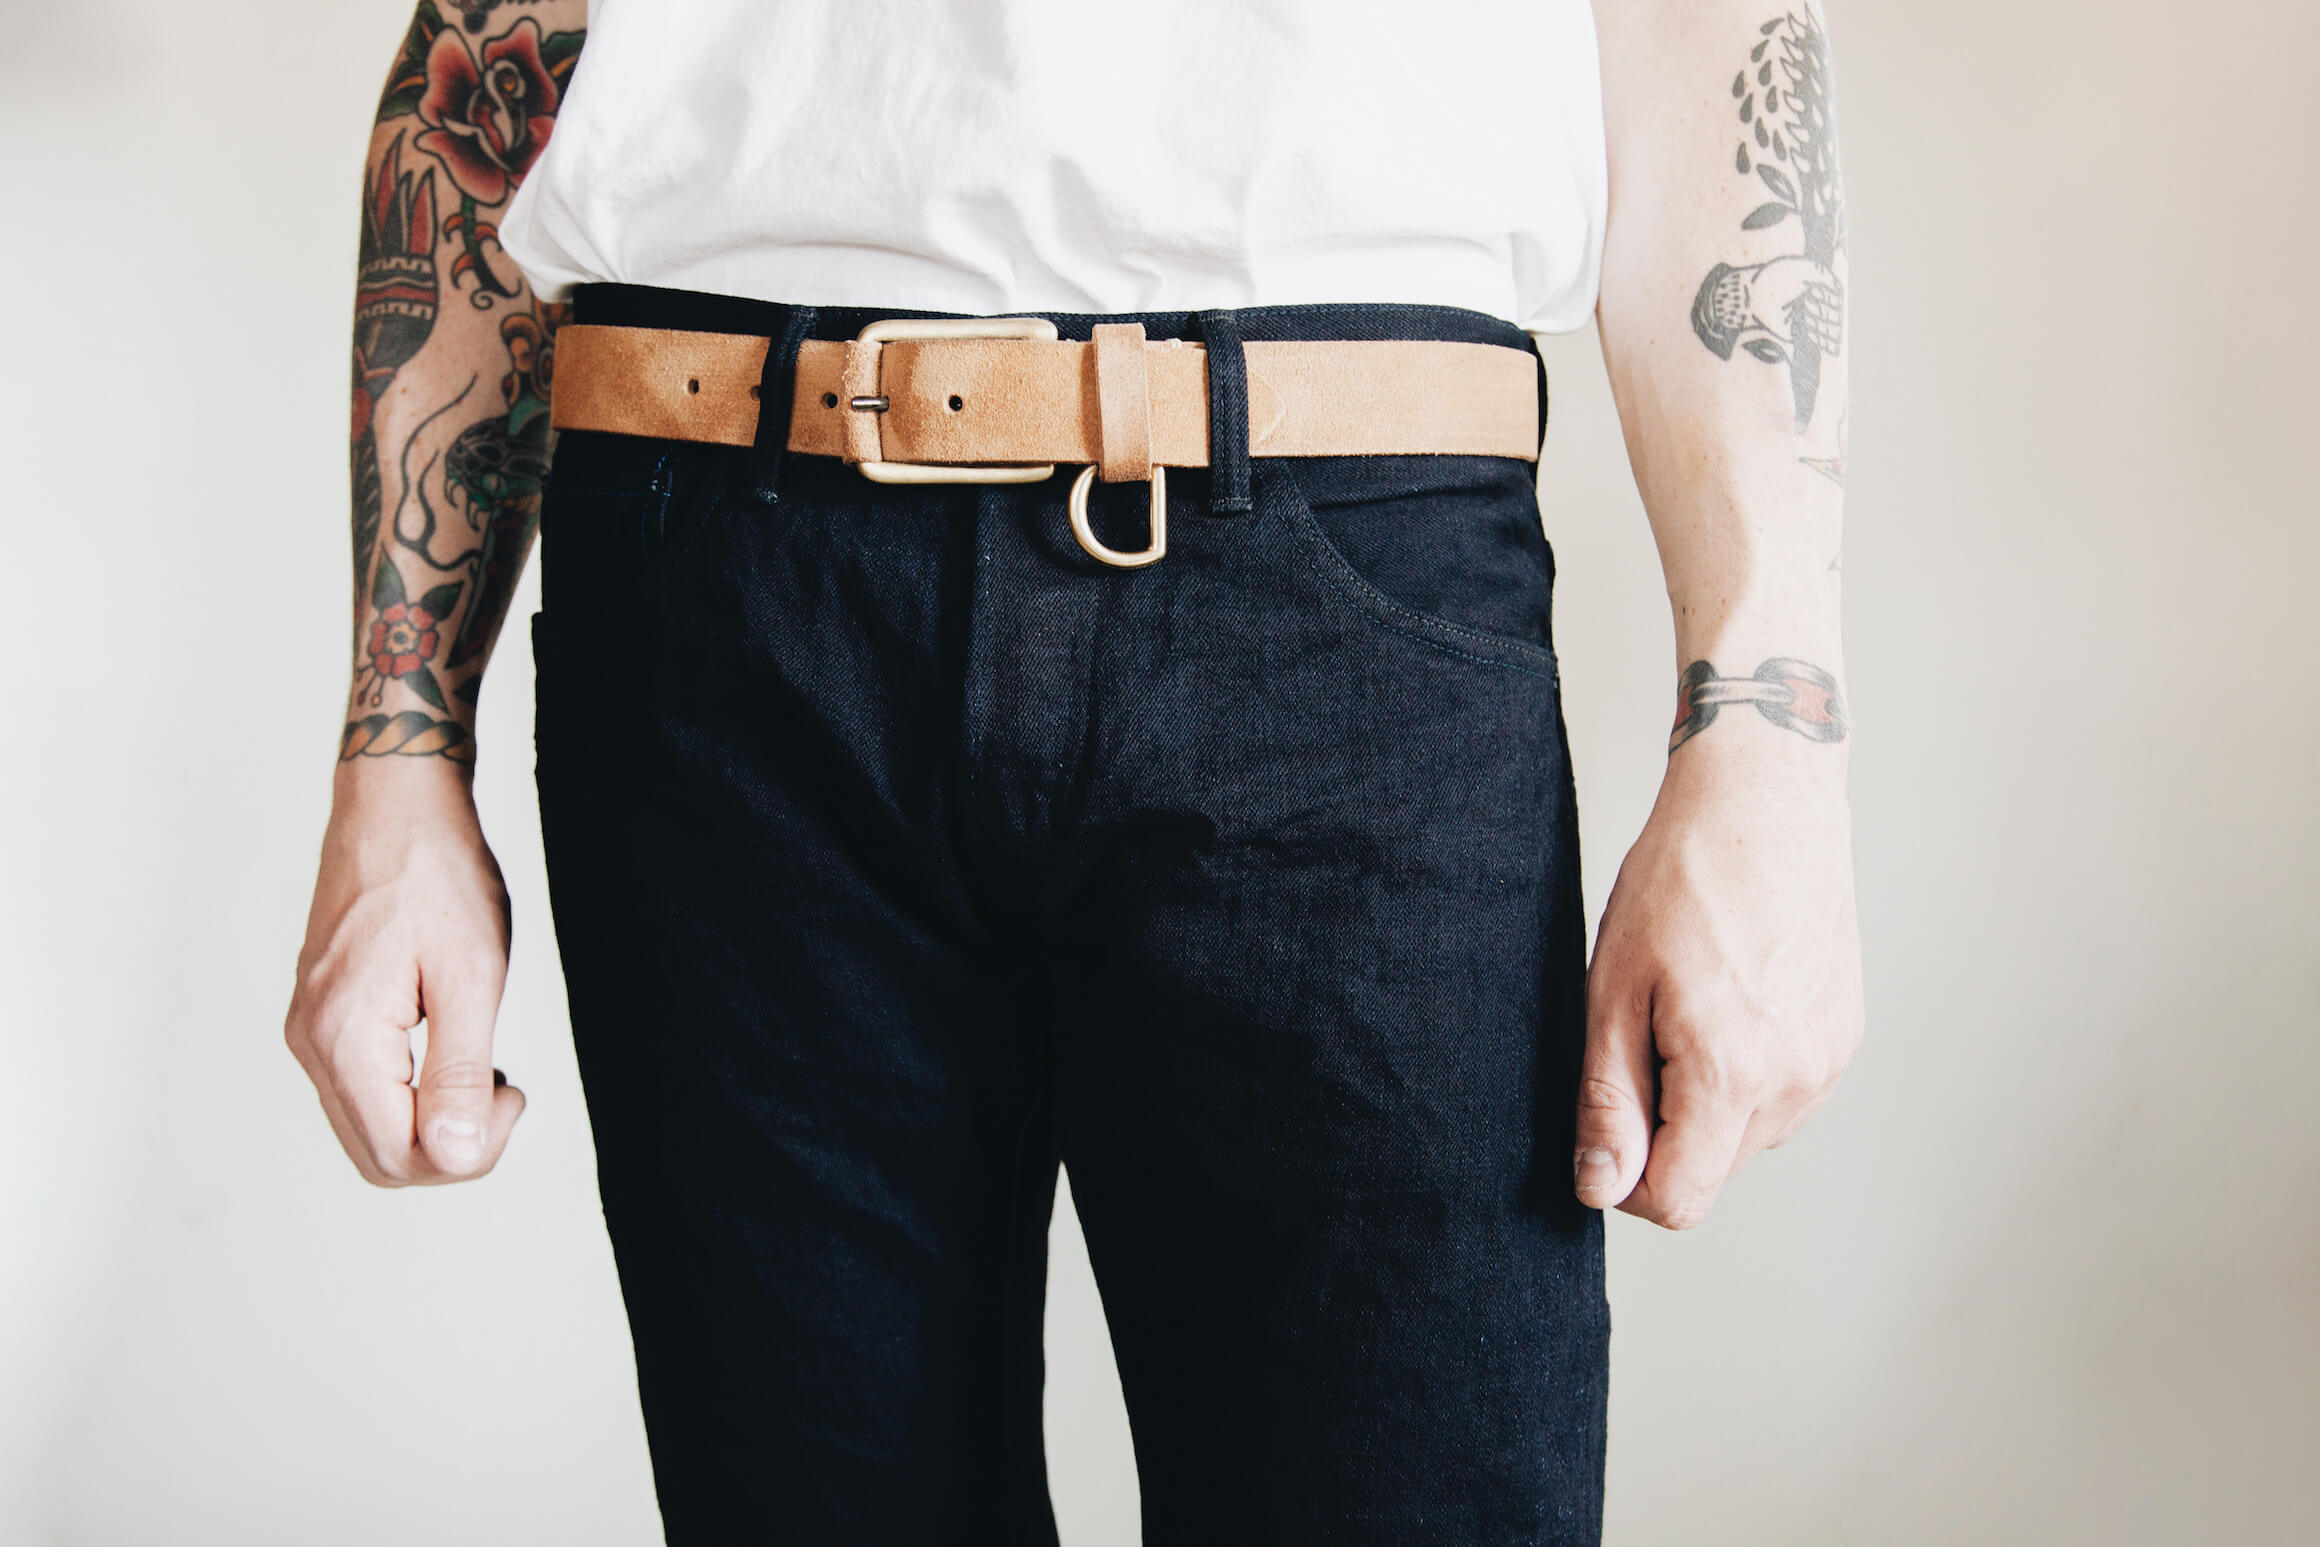 Tanuki IDHT Double Indigo 15oz jeans with yuketen belt on body